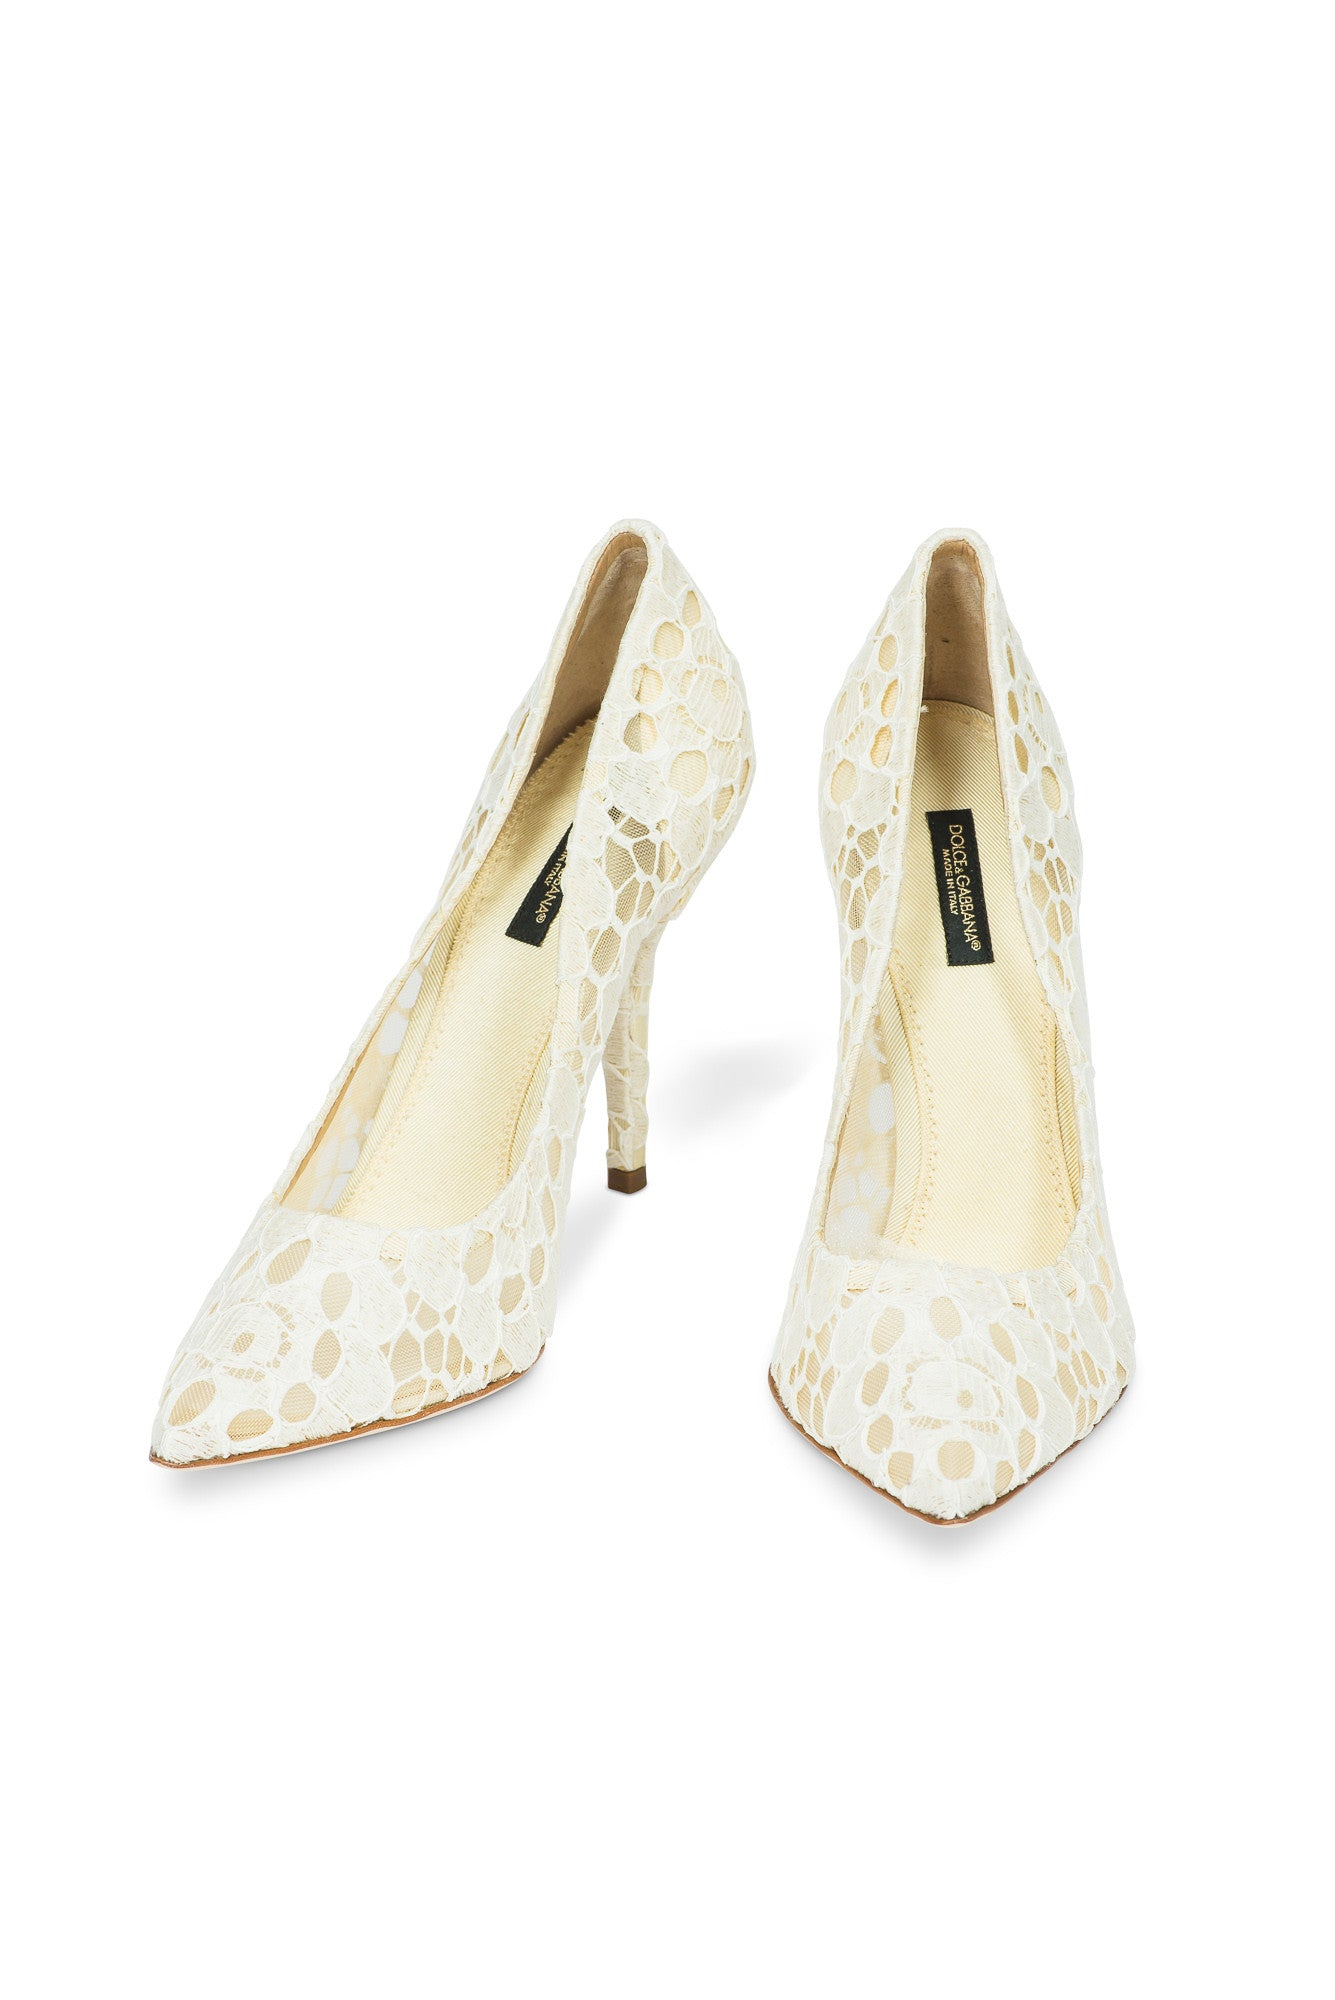 Dolce And Gabbana White Crochet Like Pumps